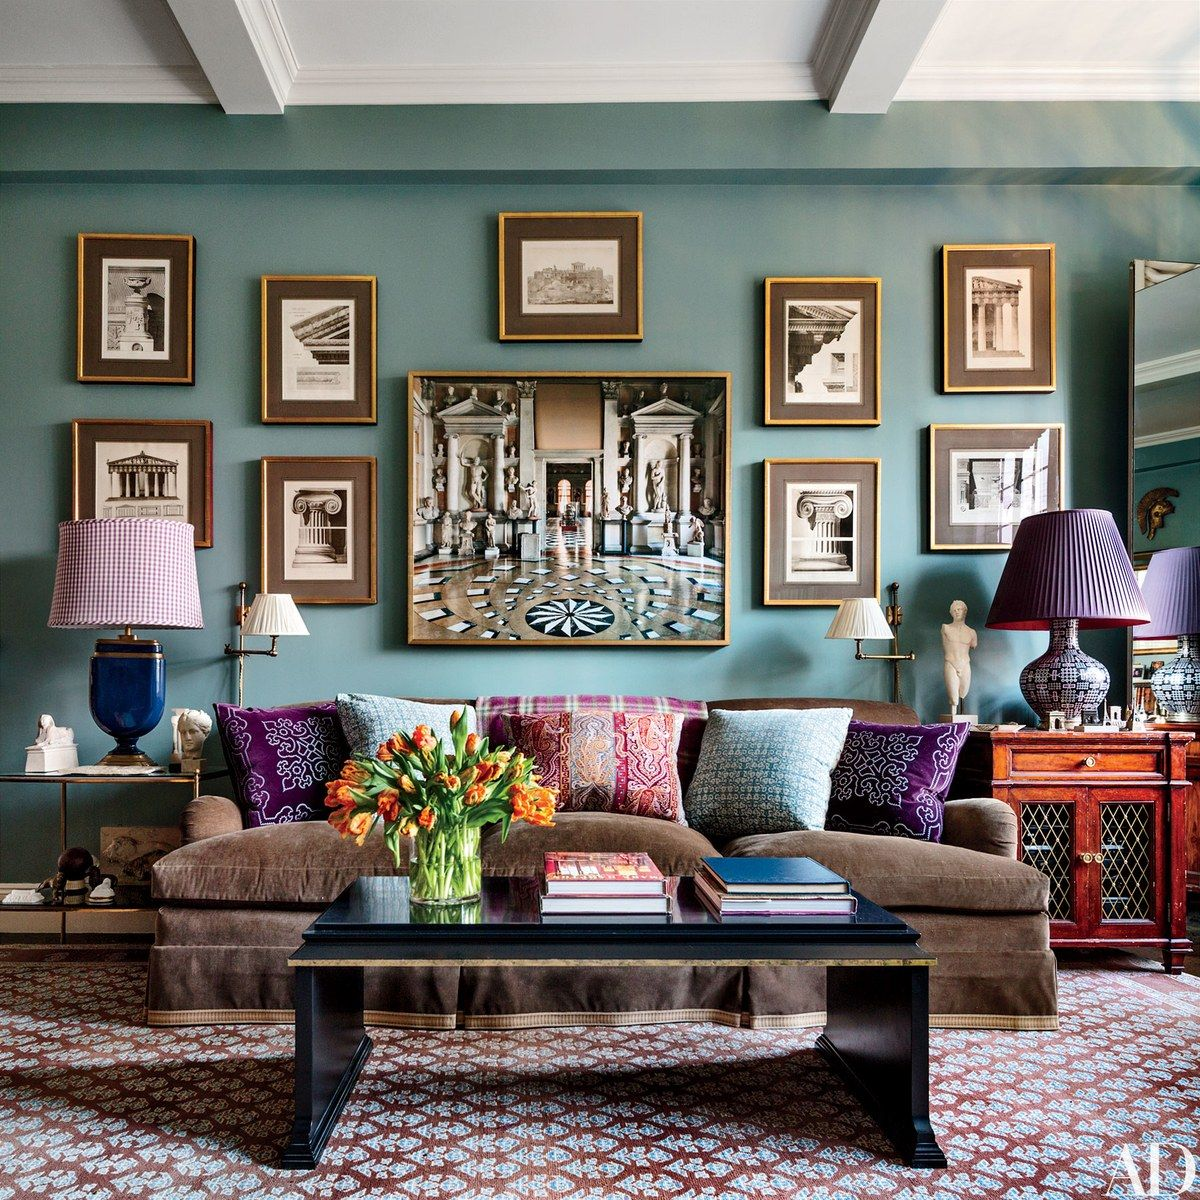 Best Blue Green Painted Room Inspiration Blue Green Rooms 400 x 300